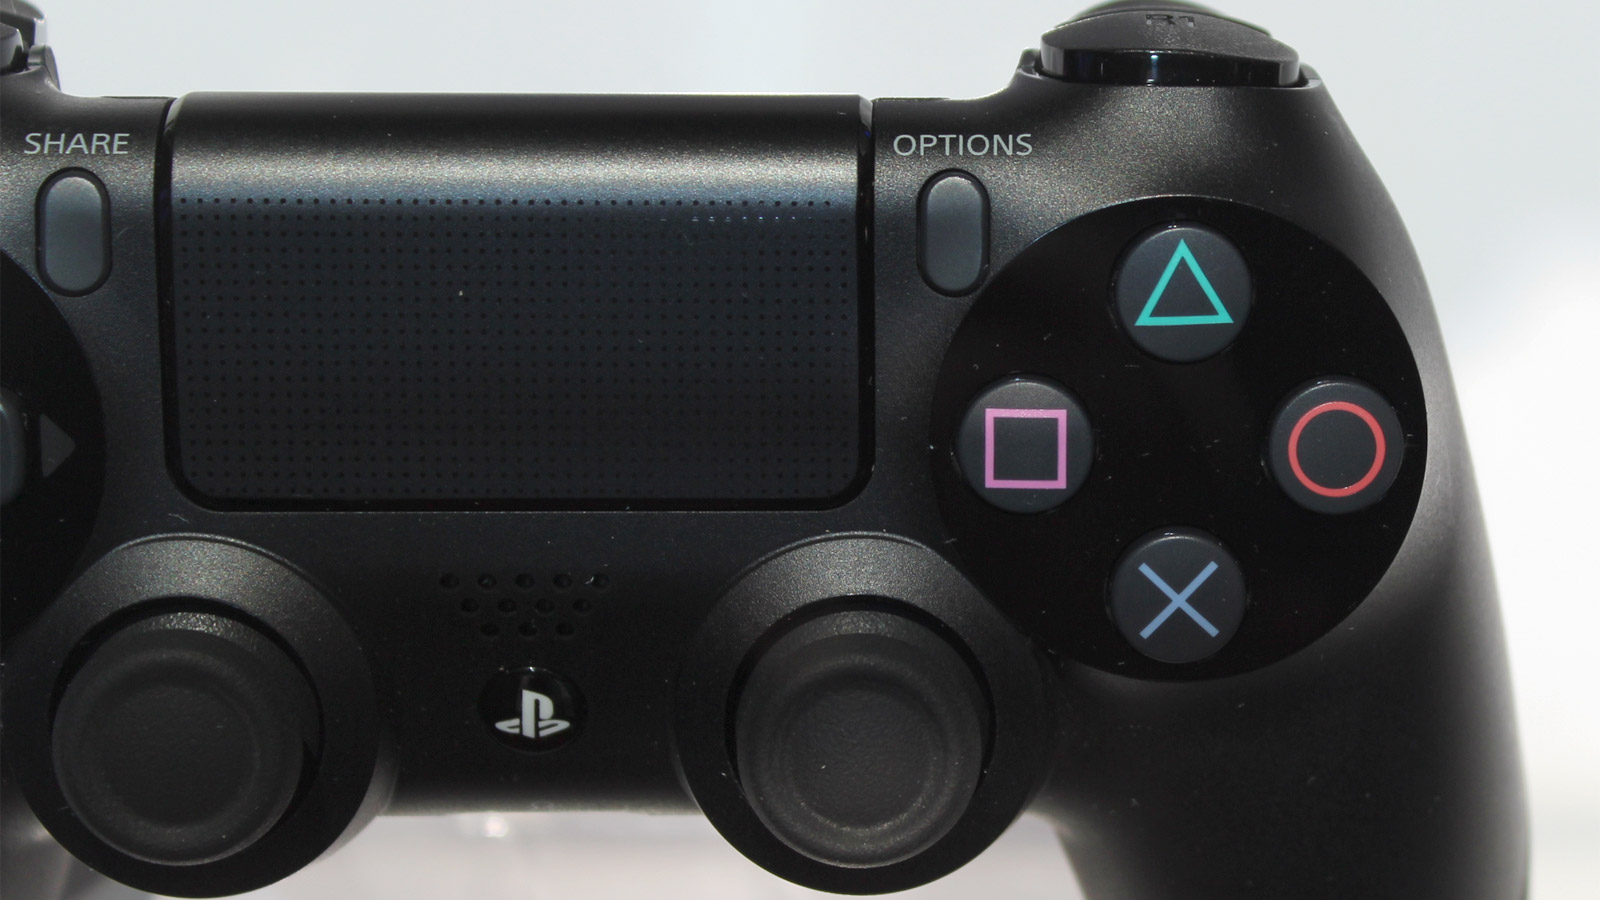 The PS4 may be stealing players from Microsoft and Nintendo